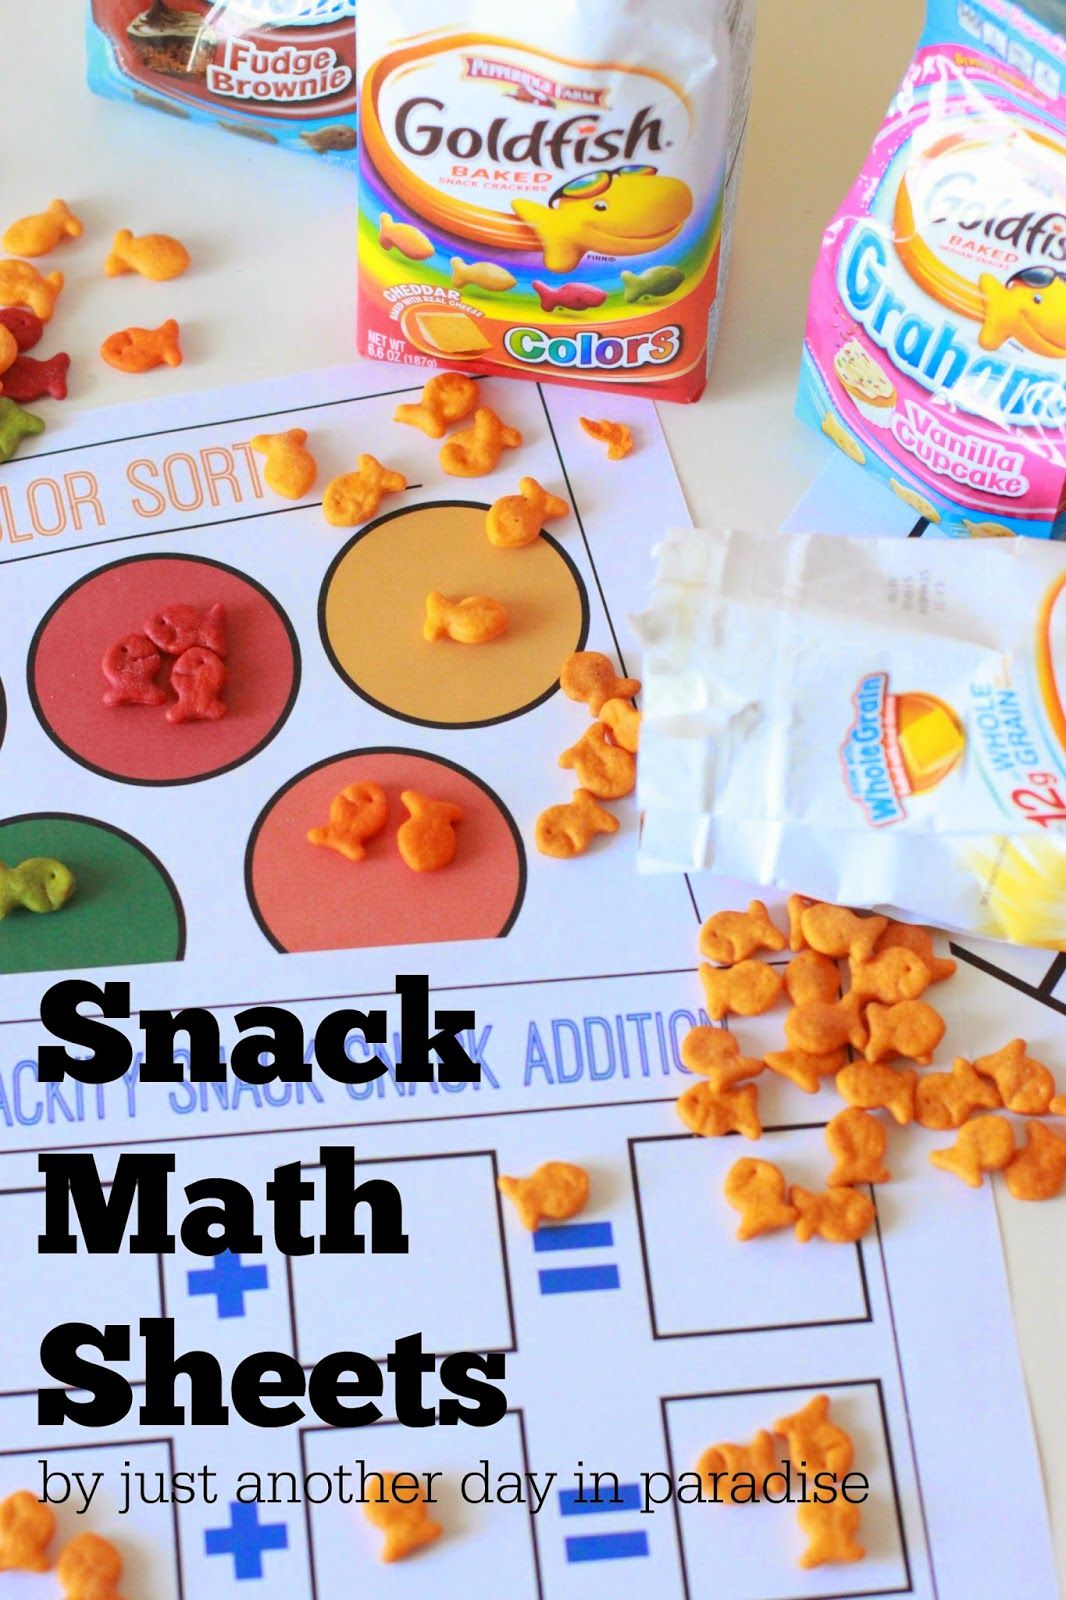 Goldfish Snack Math Sheets